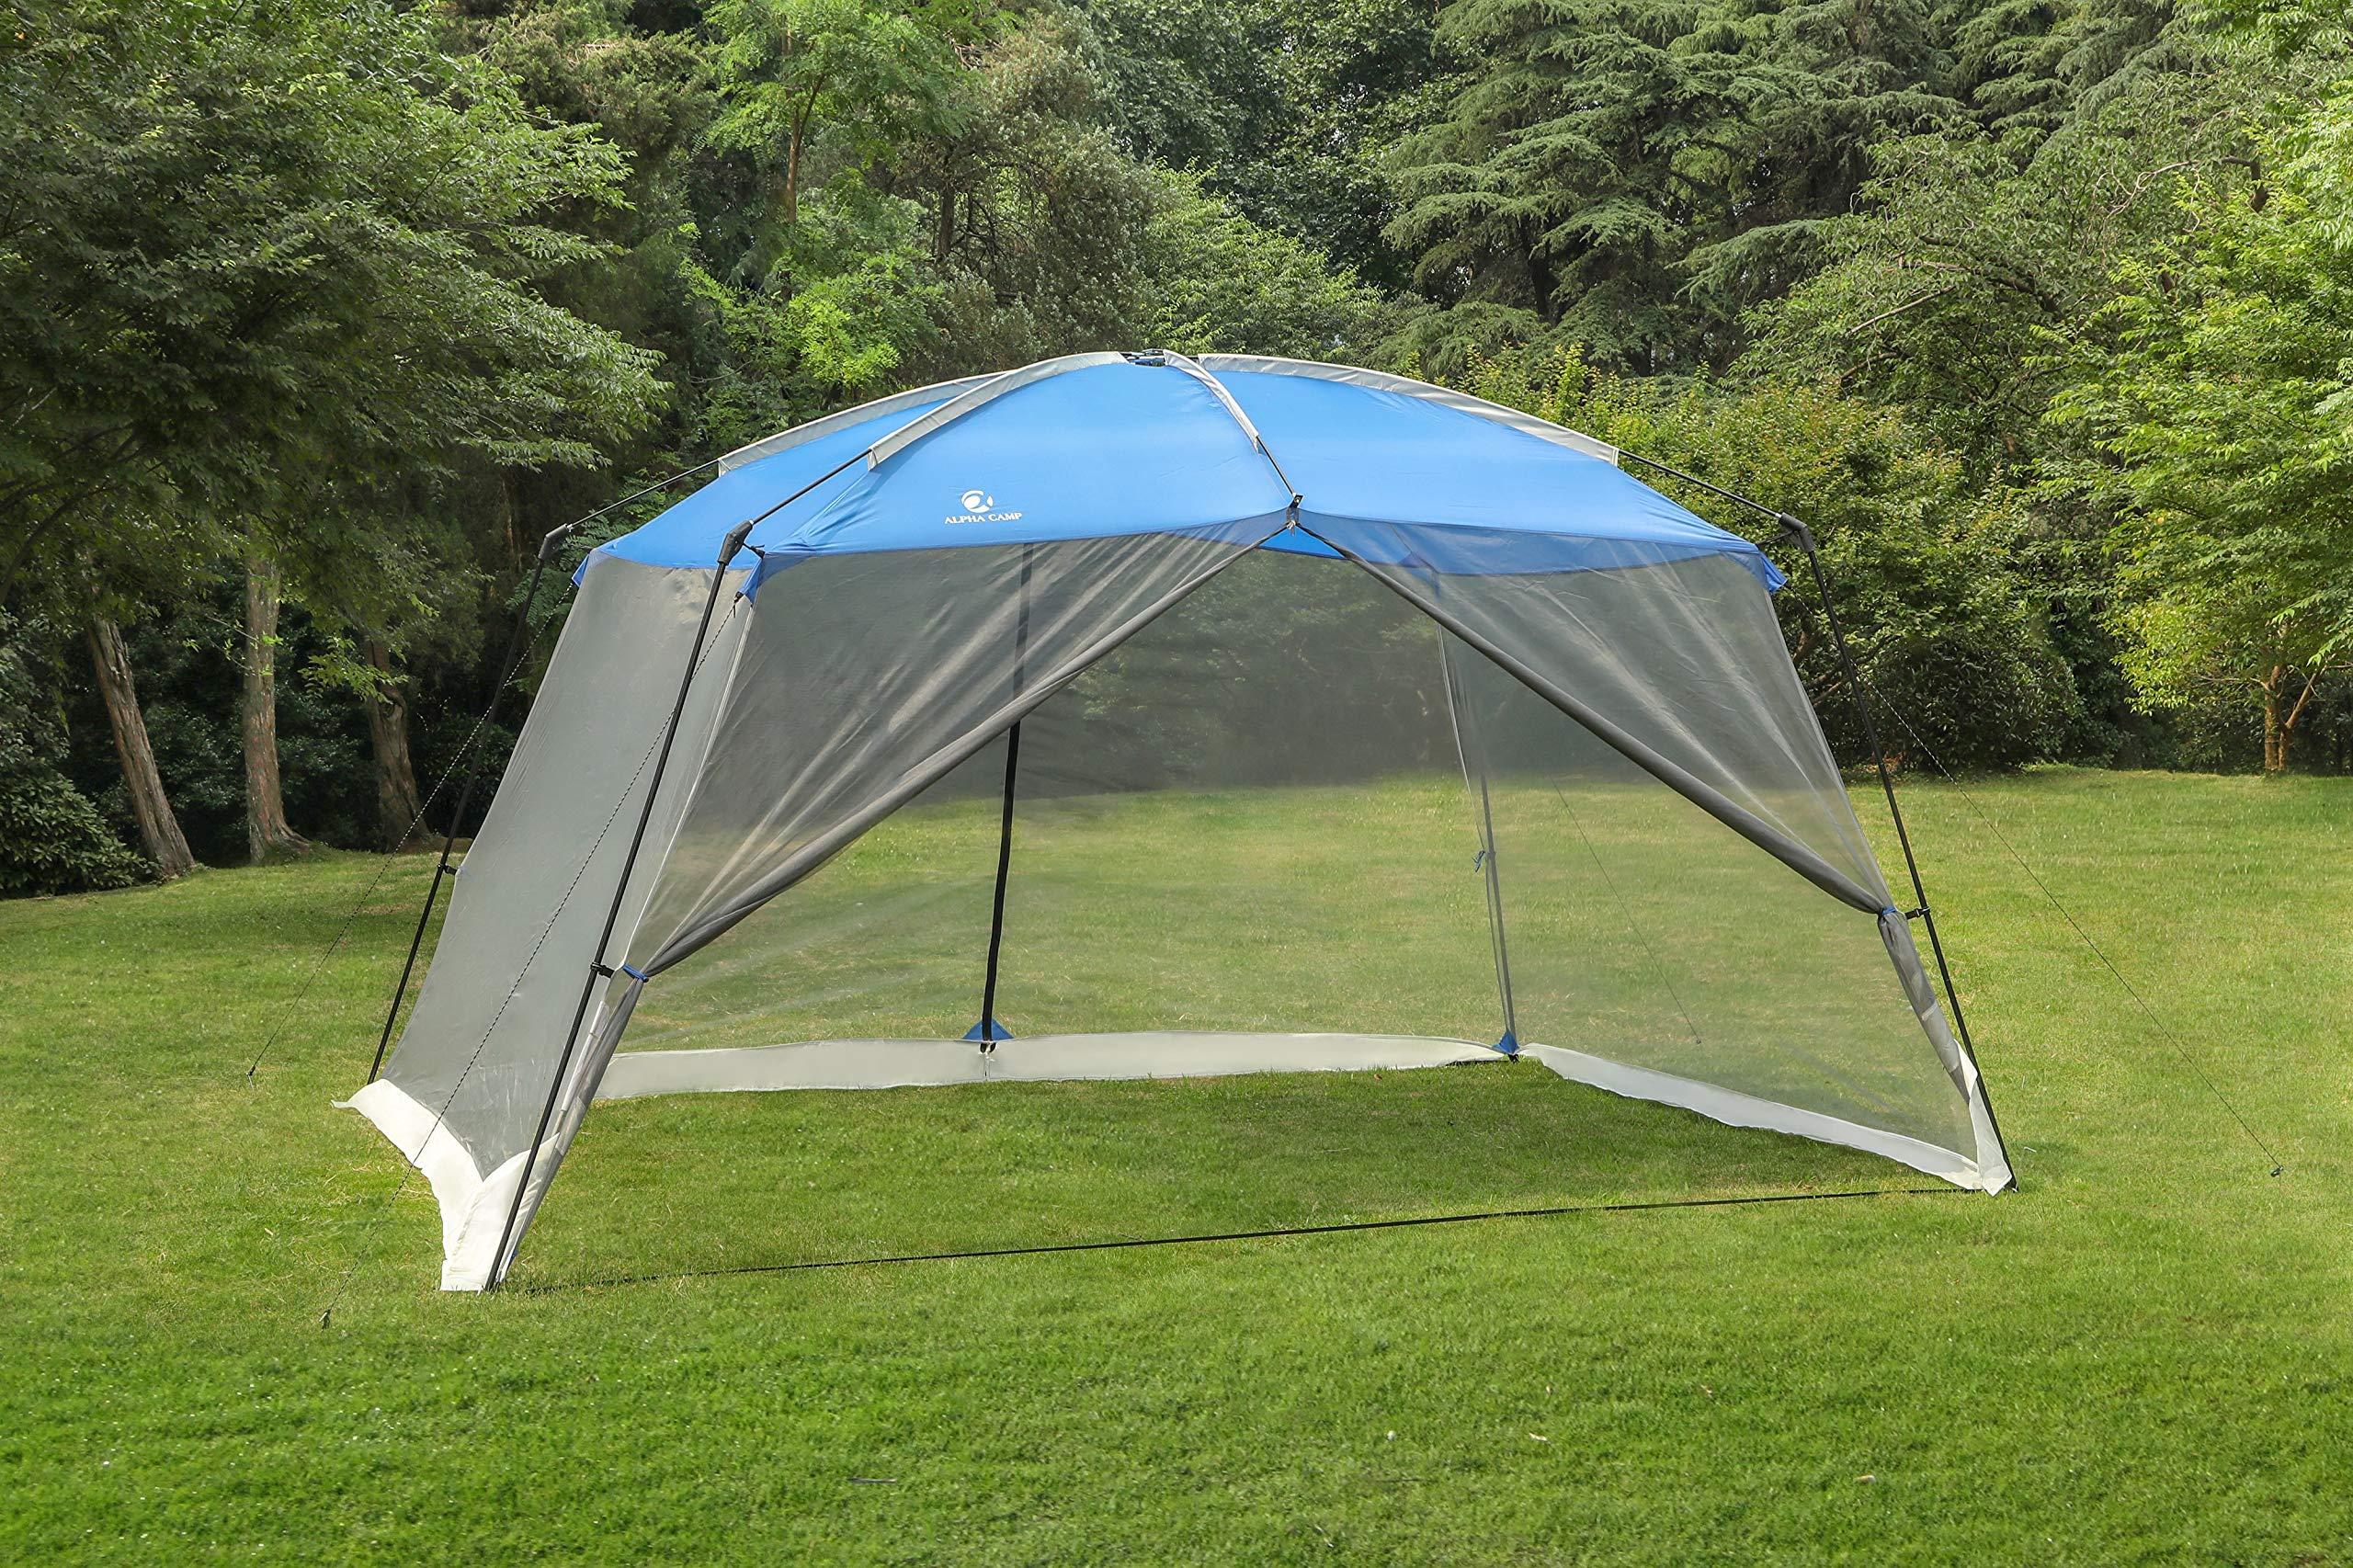 ALPHA CAMP Screen House Tent Easy Setup Canopy - 13'X9', Blue by ALPHA CAMP